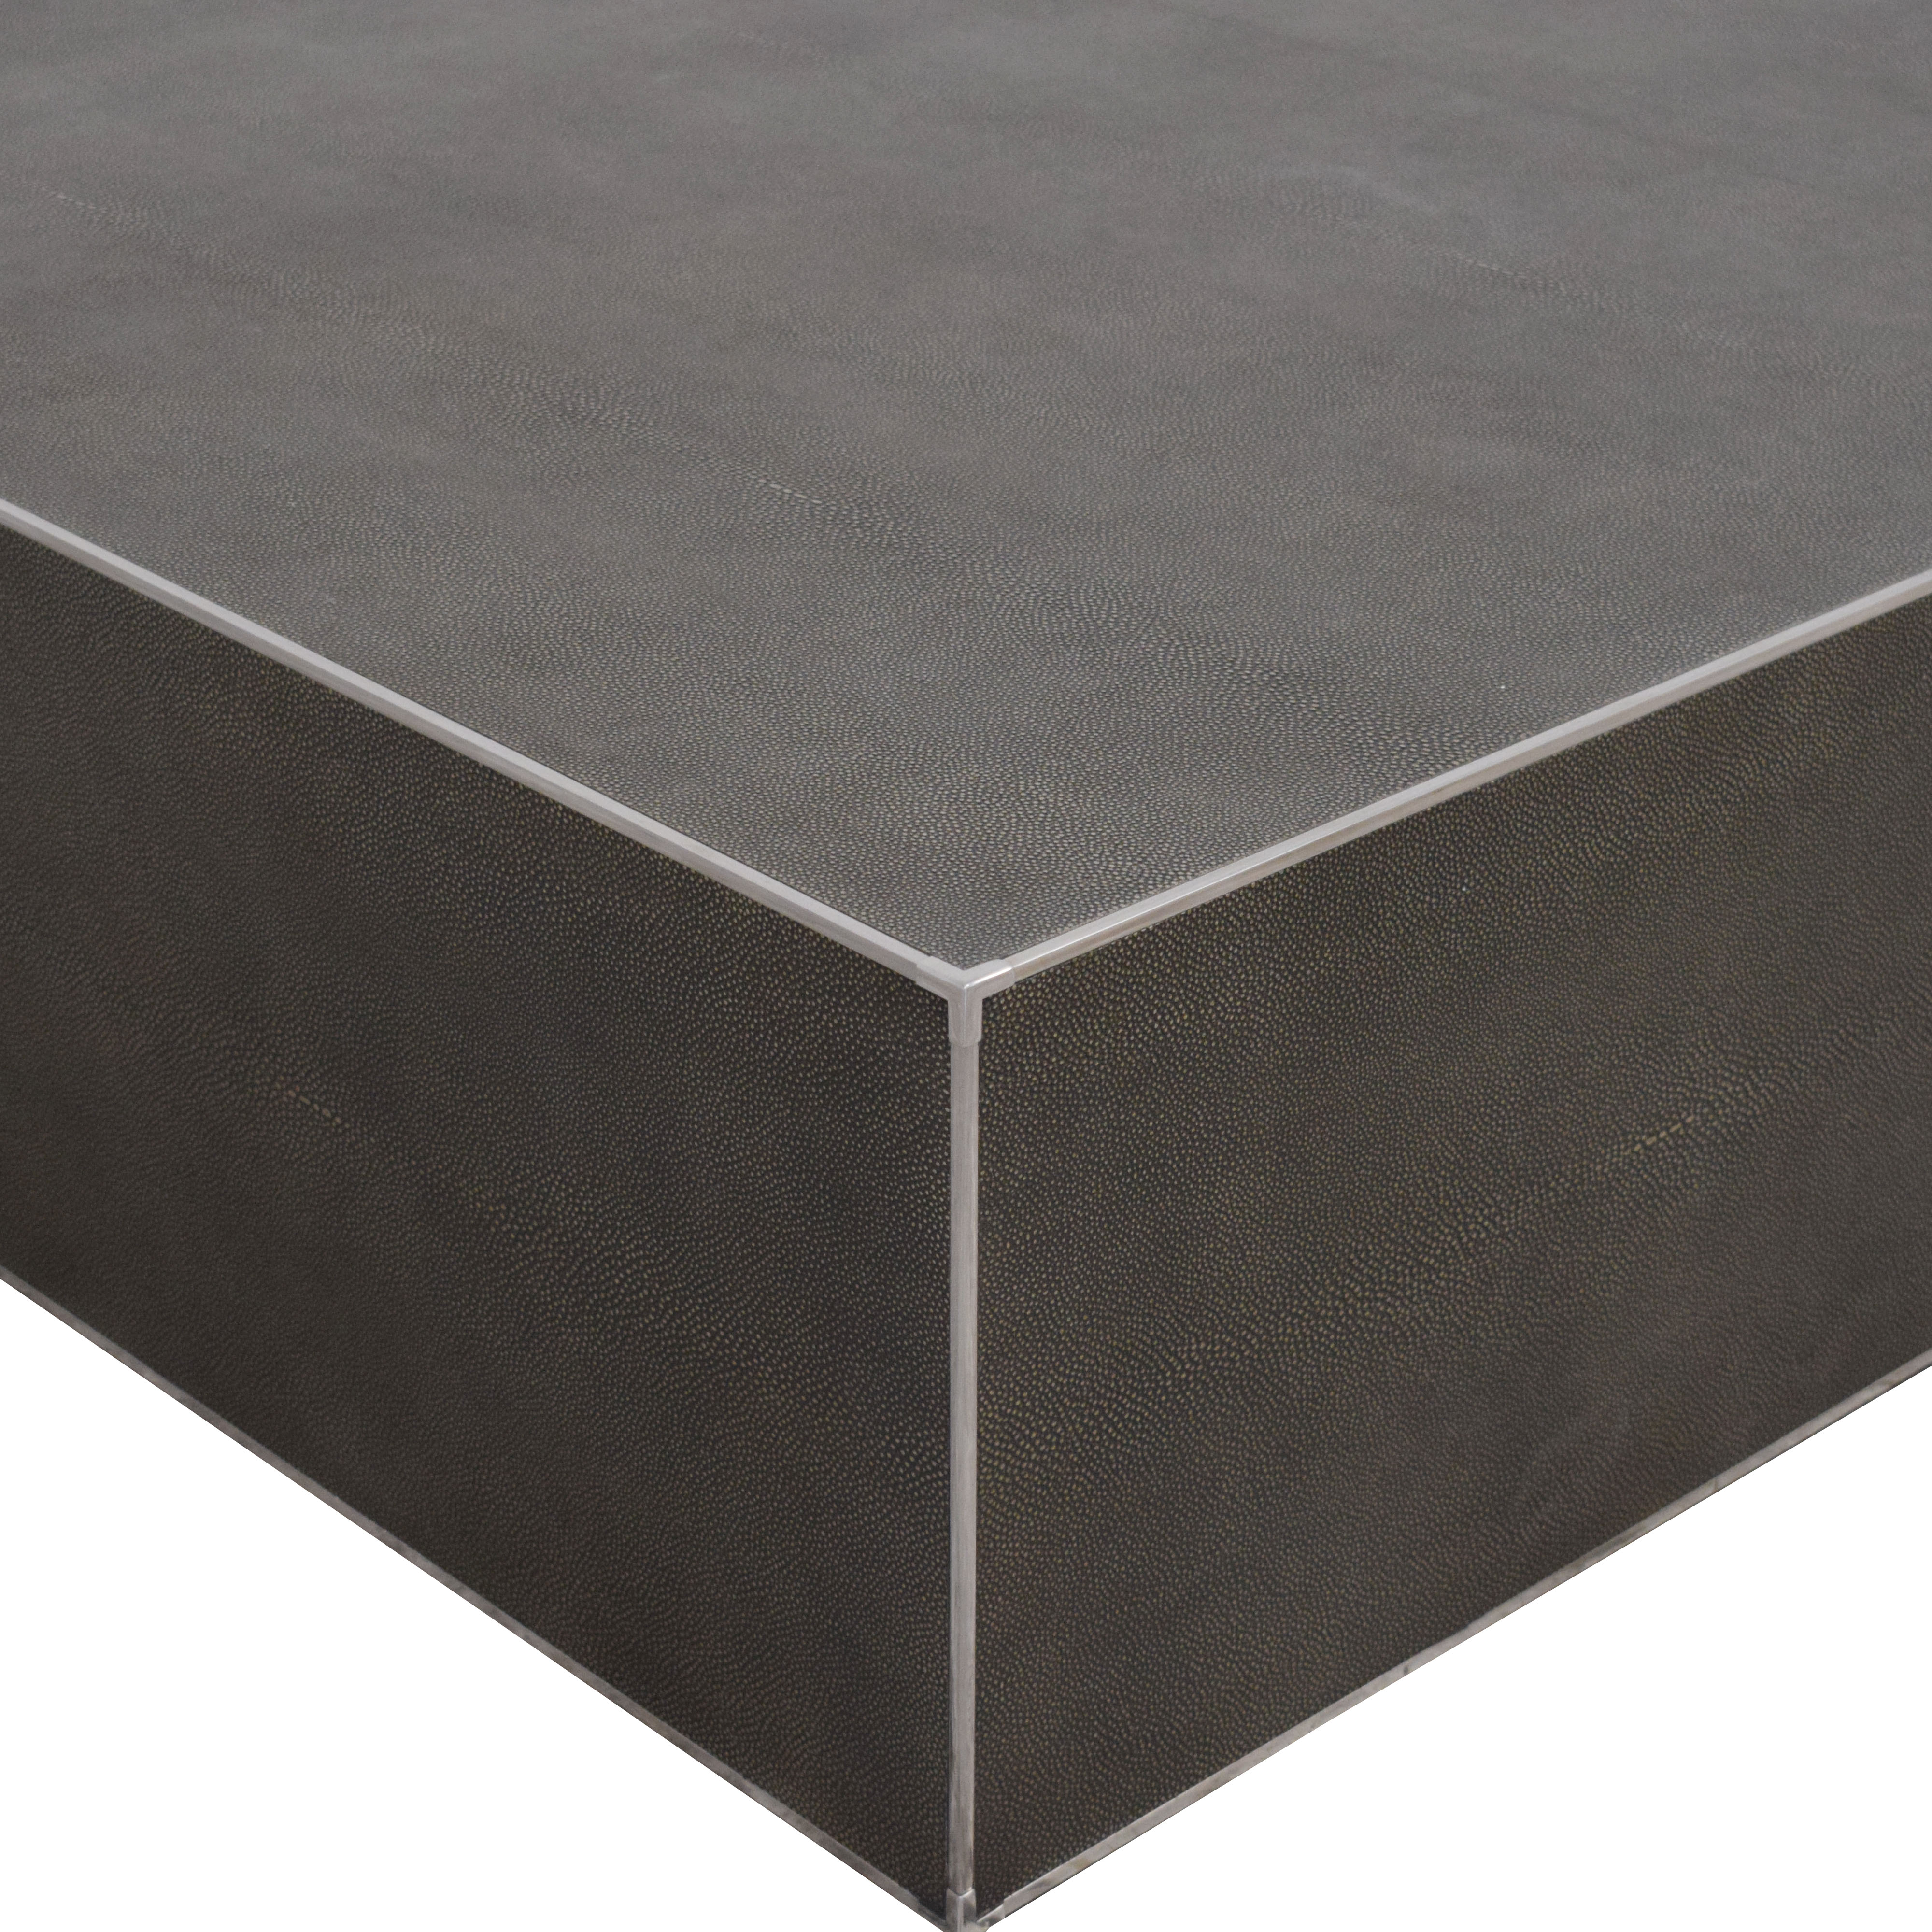 Restoration Hardware Restoration Hardware Saunderson Shagreen Cube Coffee Table discount